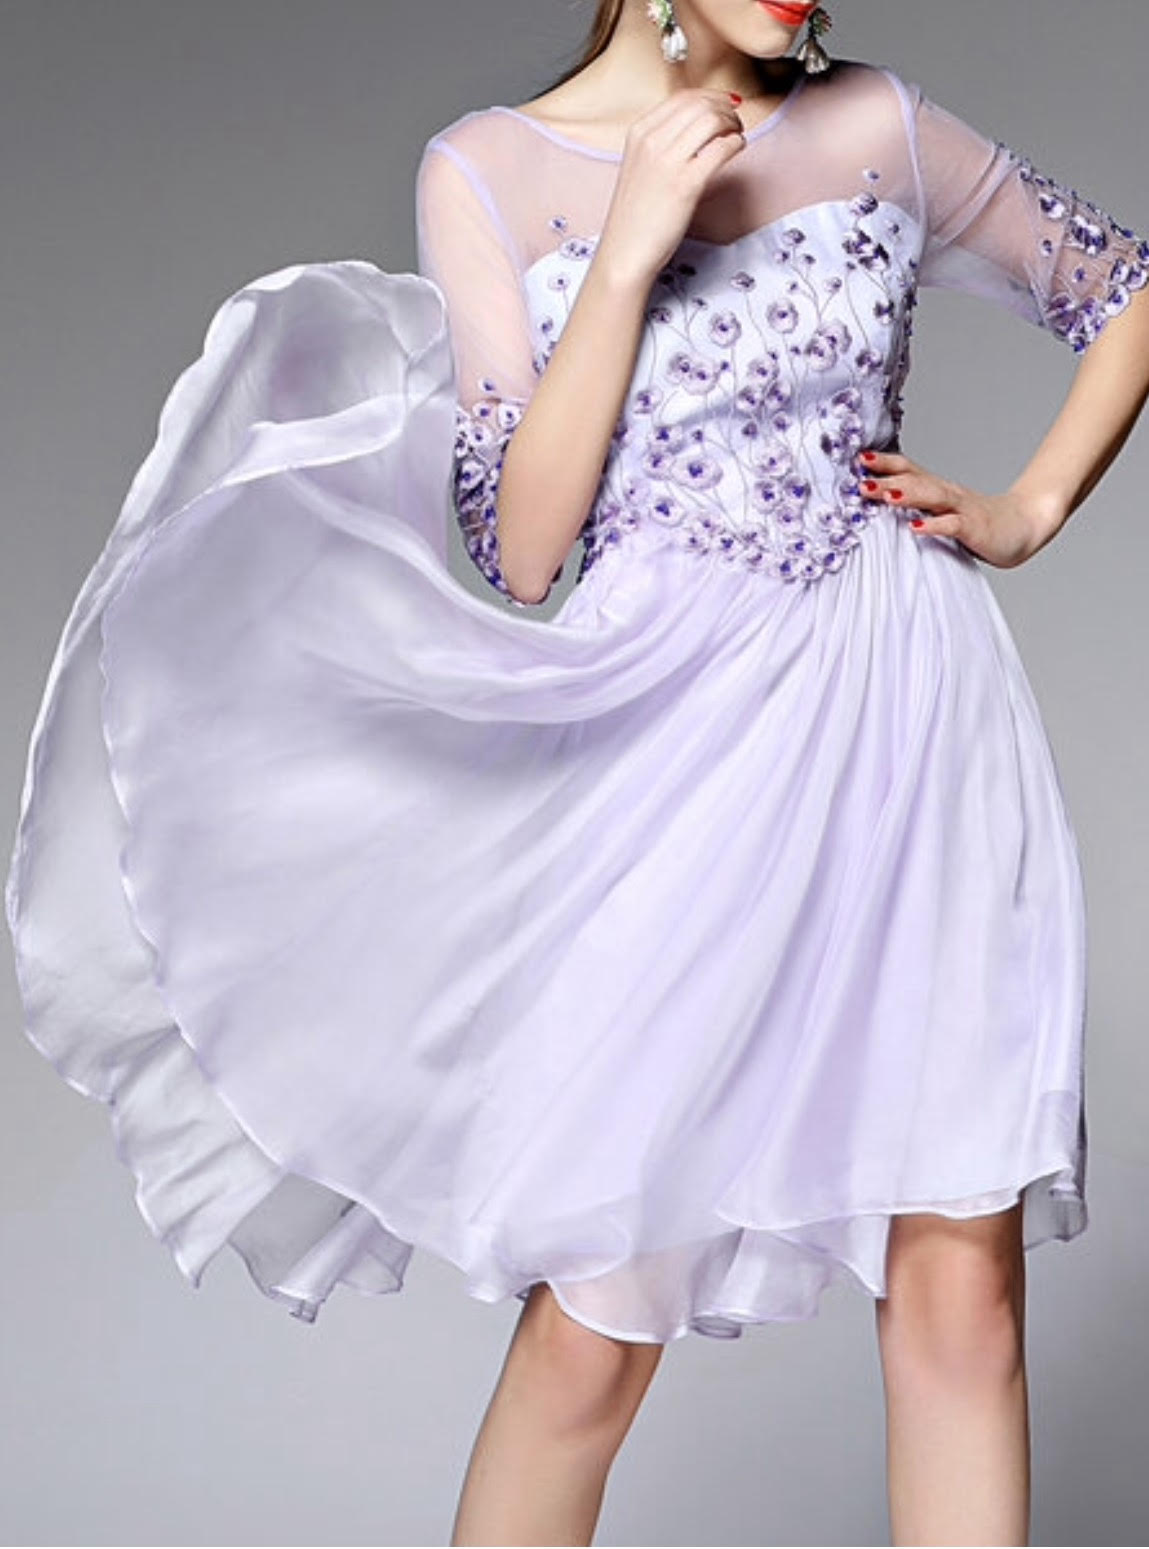 Dresses Modern Day Disney Princesses Would Wear with ...